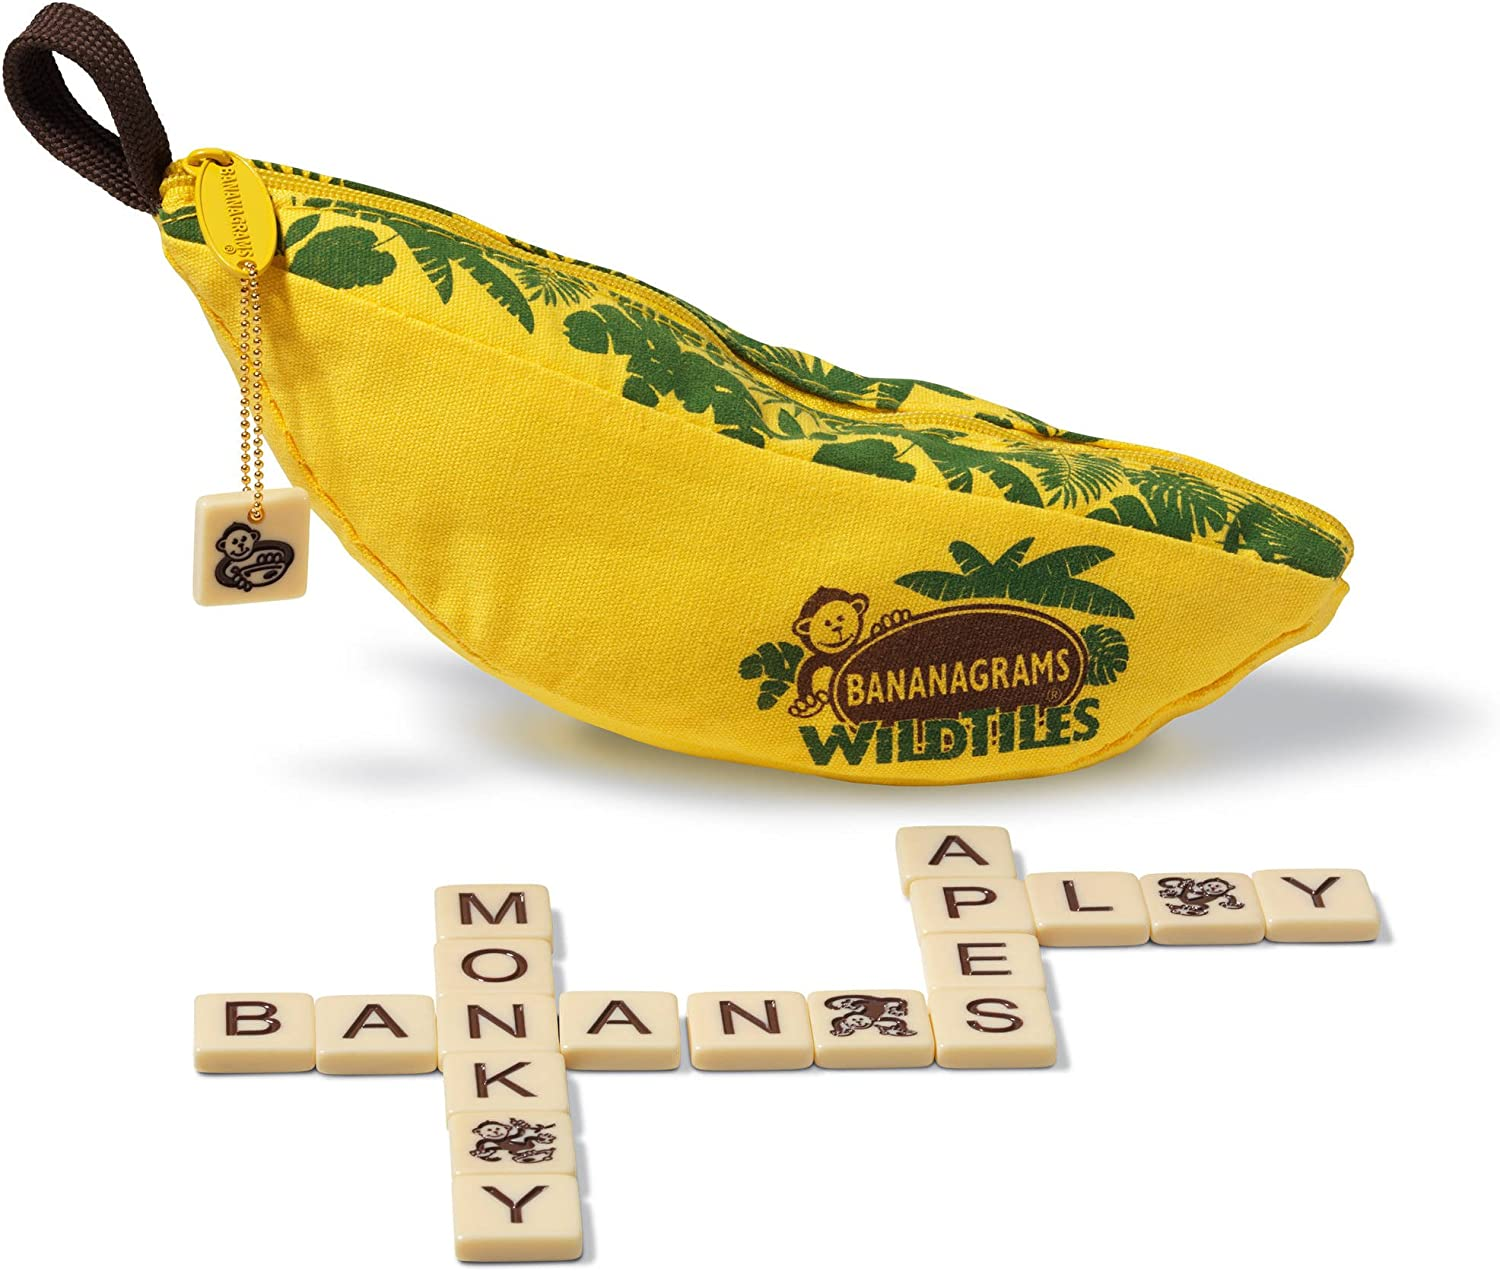 Bananagrams WildTiles Vocabulary Building and Spelling Improvement Lettered Tile Game for Ages 7 and Up